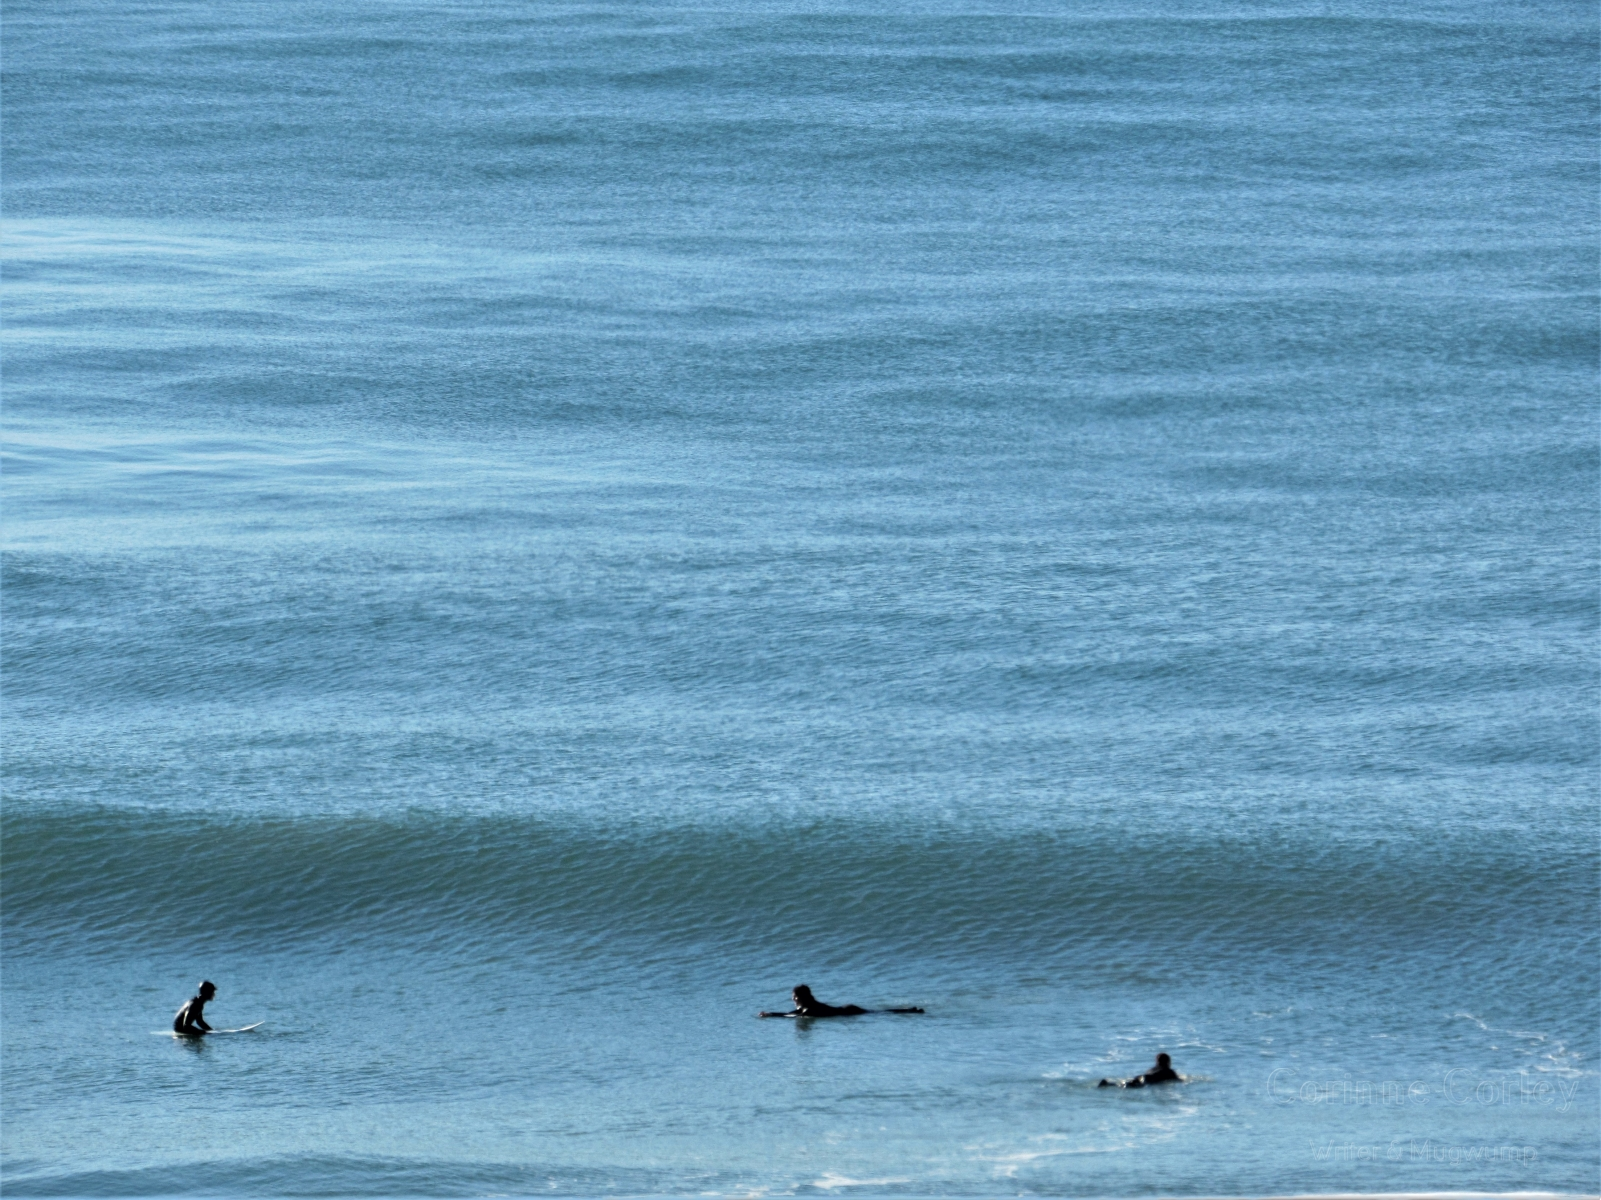 Surfers-in-the-blue